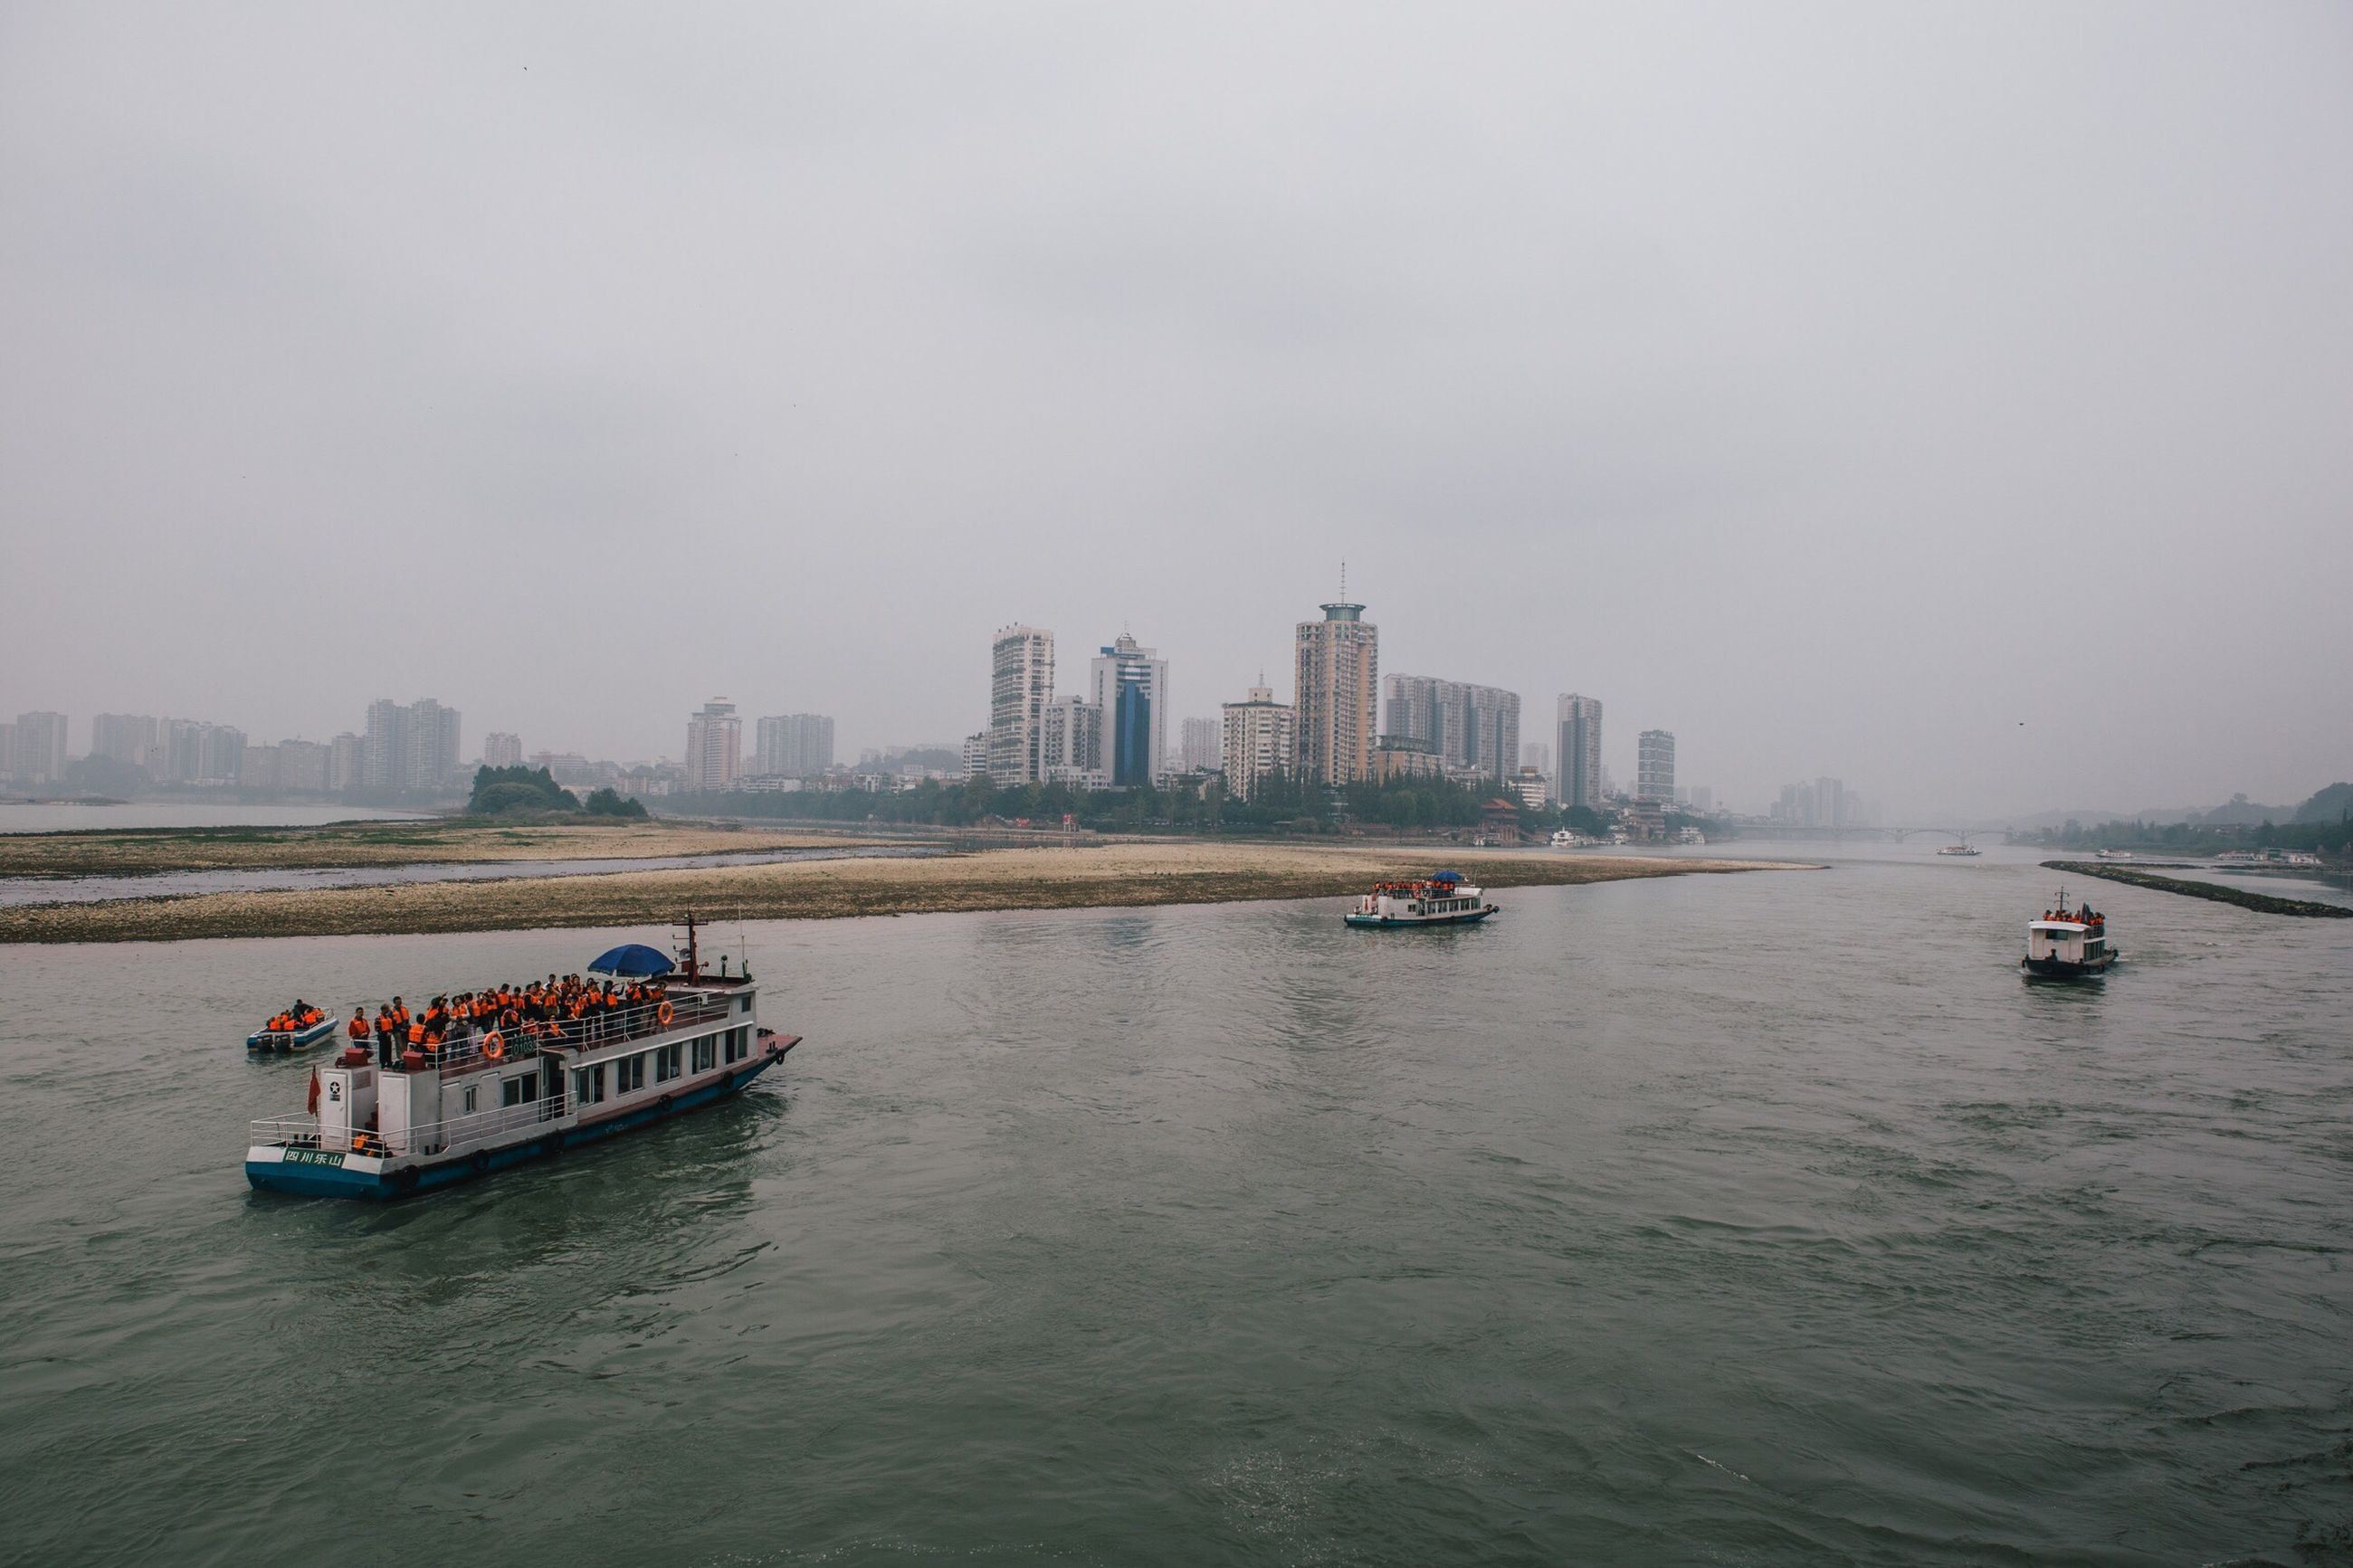 nautical vessel, transportation, boat, mode of transport, water, river, waterfront, building exterior, architecture, city, skyscraper, ferry, sailing, sky, urban skyline, passenger craft, ship, day, tall, barge, journey, city life